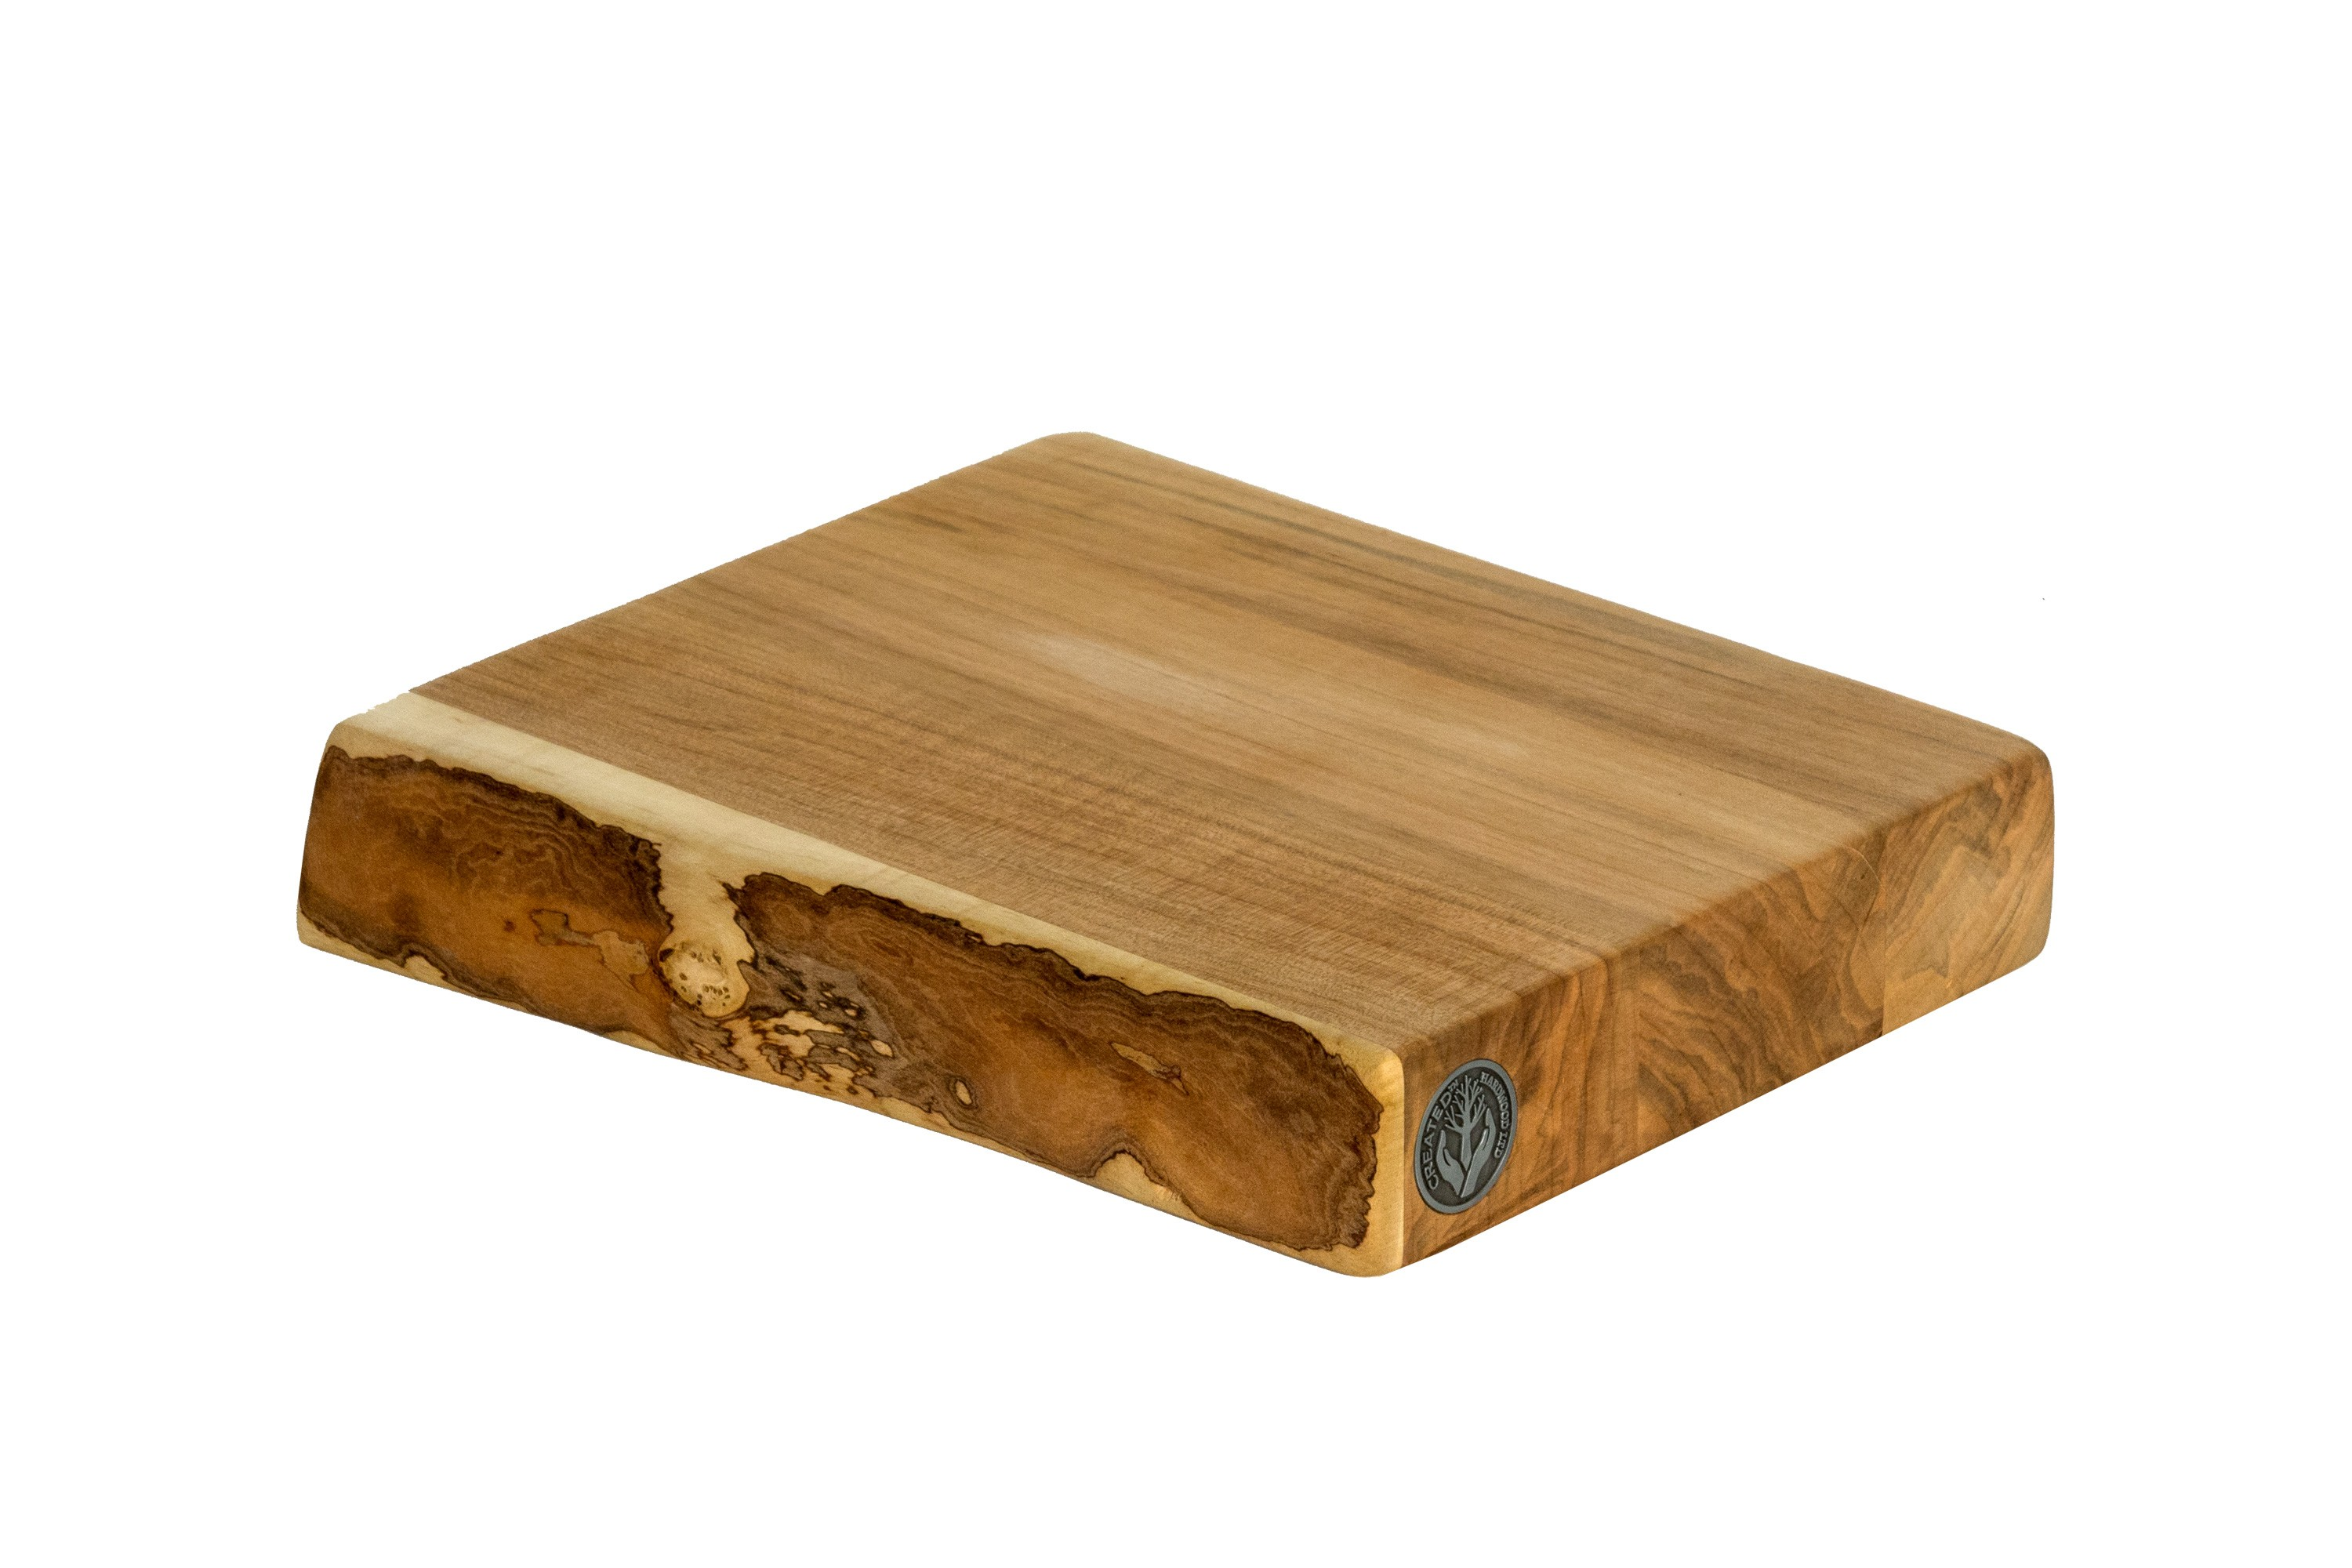 Live Edge Maple Cutting Board #021 - 9